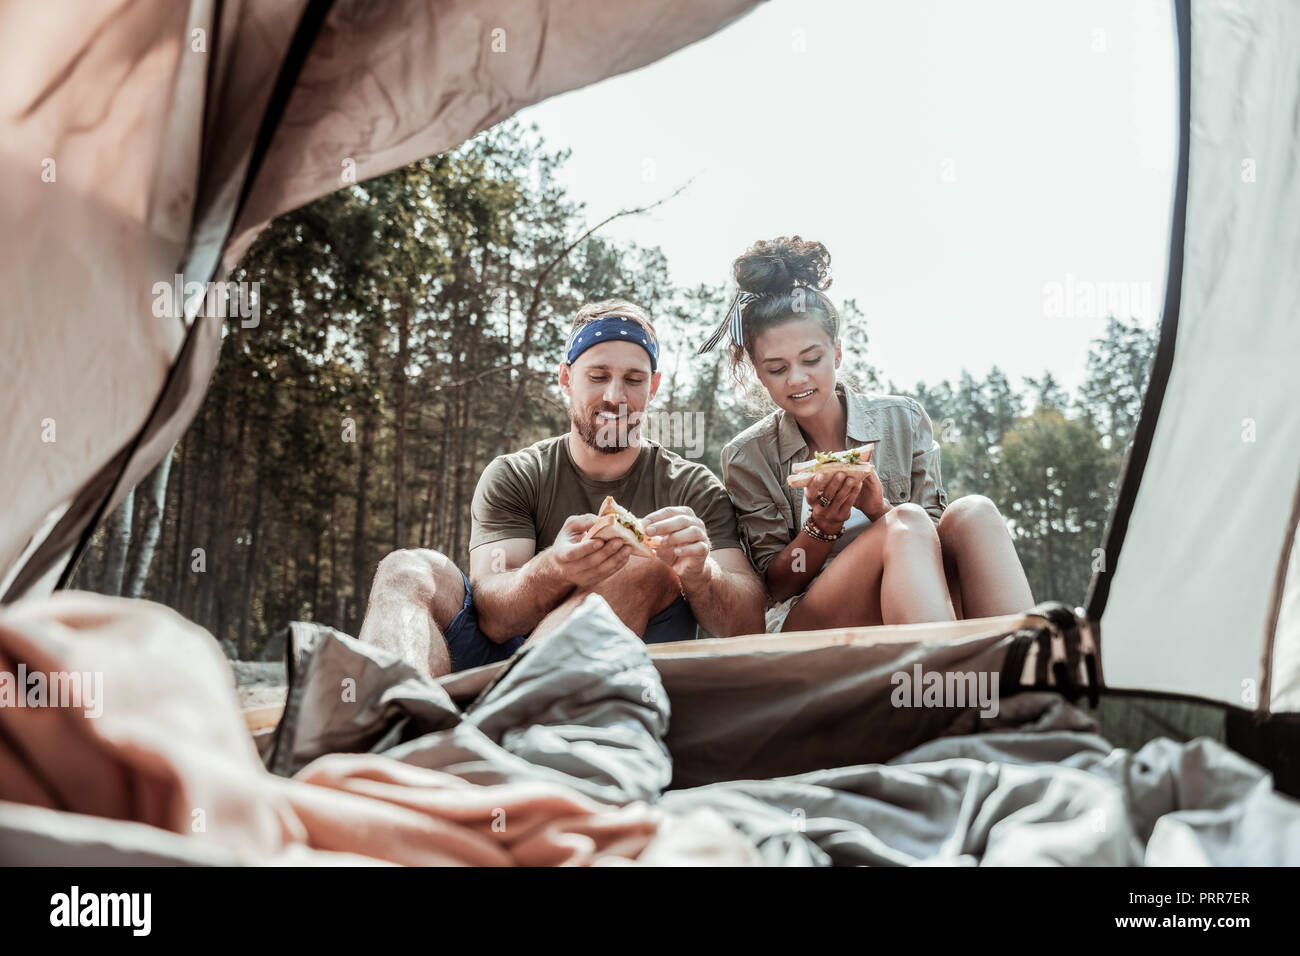 Caring loving girlfriend making some sandwiches with lettuce after waking in tent - Stock Image